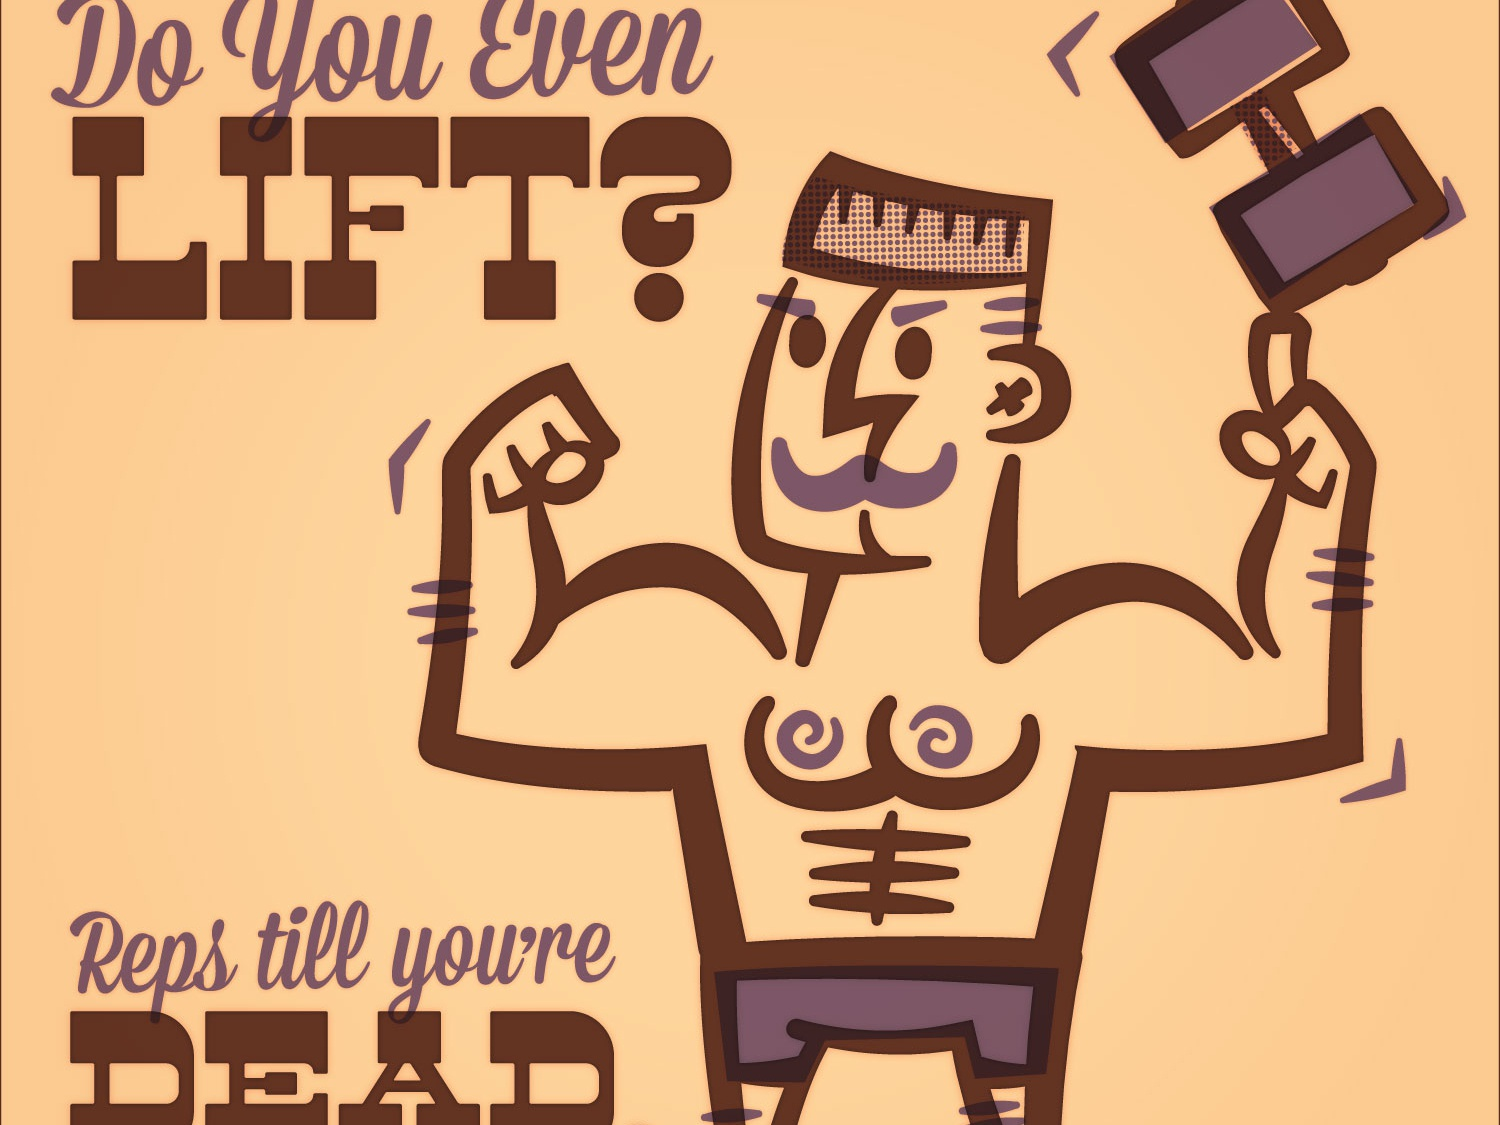 Do you even lift? halftones purple strongman strong weightlifting weights moustache vector vintage retro illustration